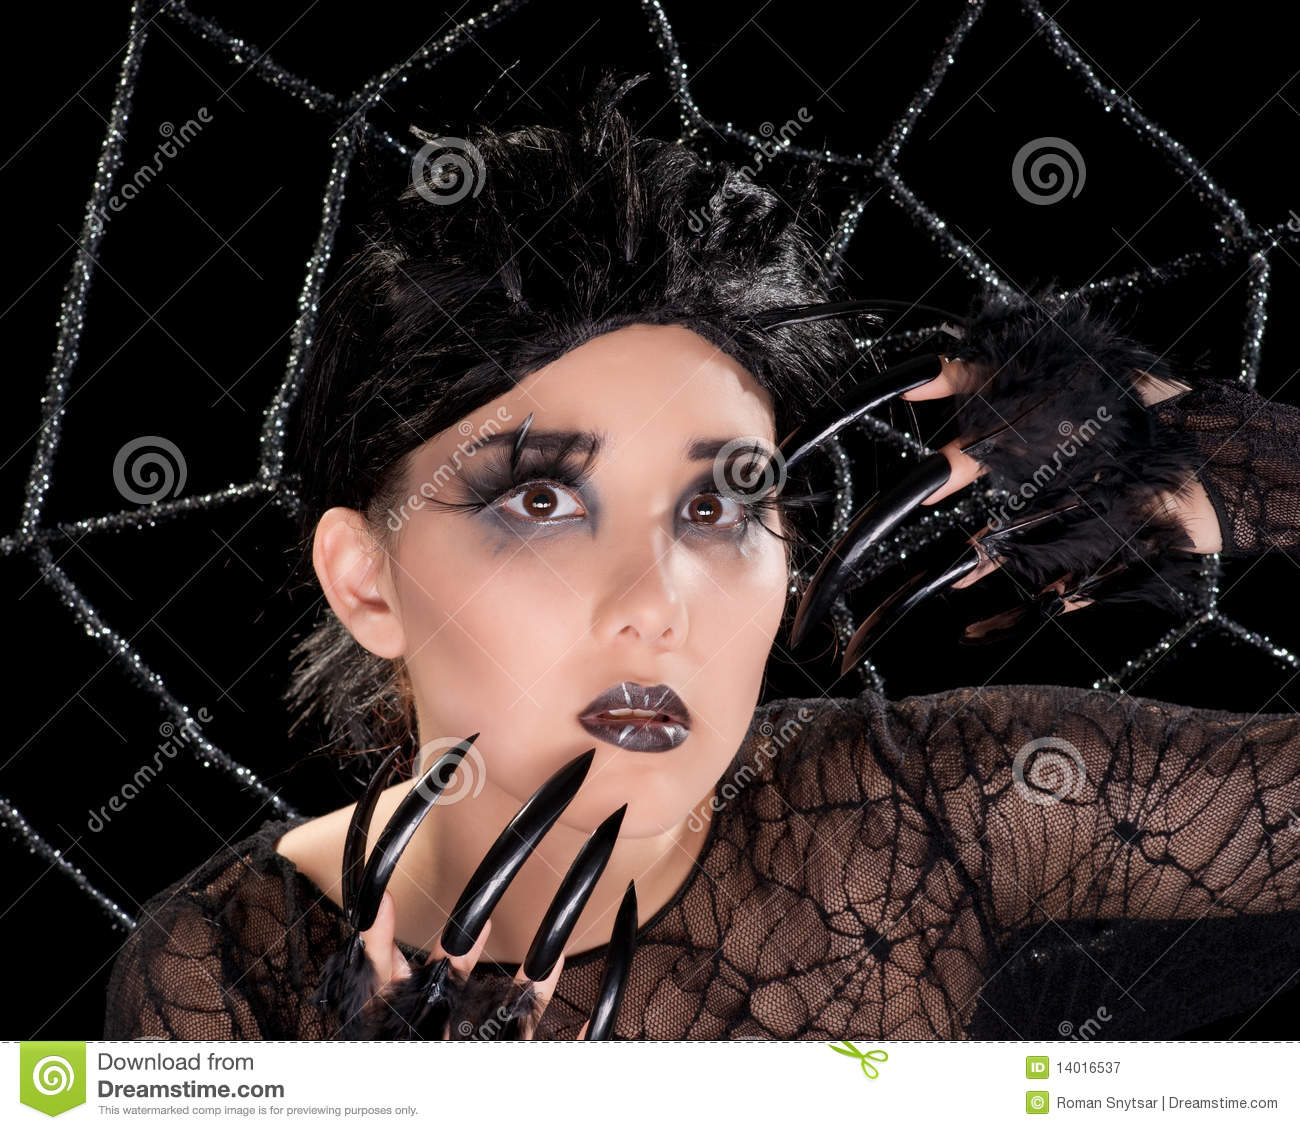 beautiful girl with spider makeup stock image image 14016537. Black Bedroom Furniture Sets. Home Design Ideas